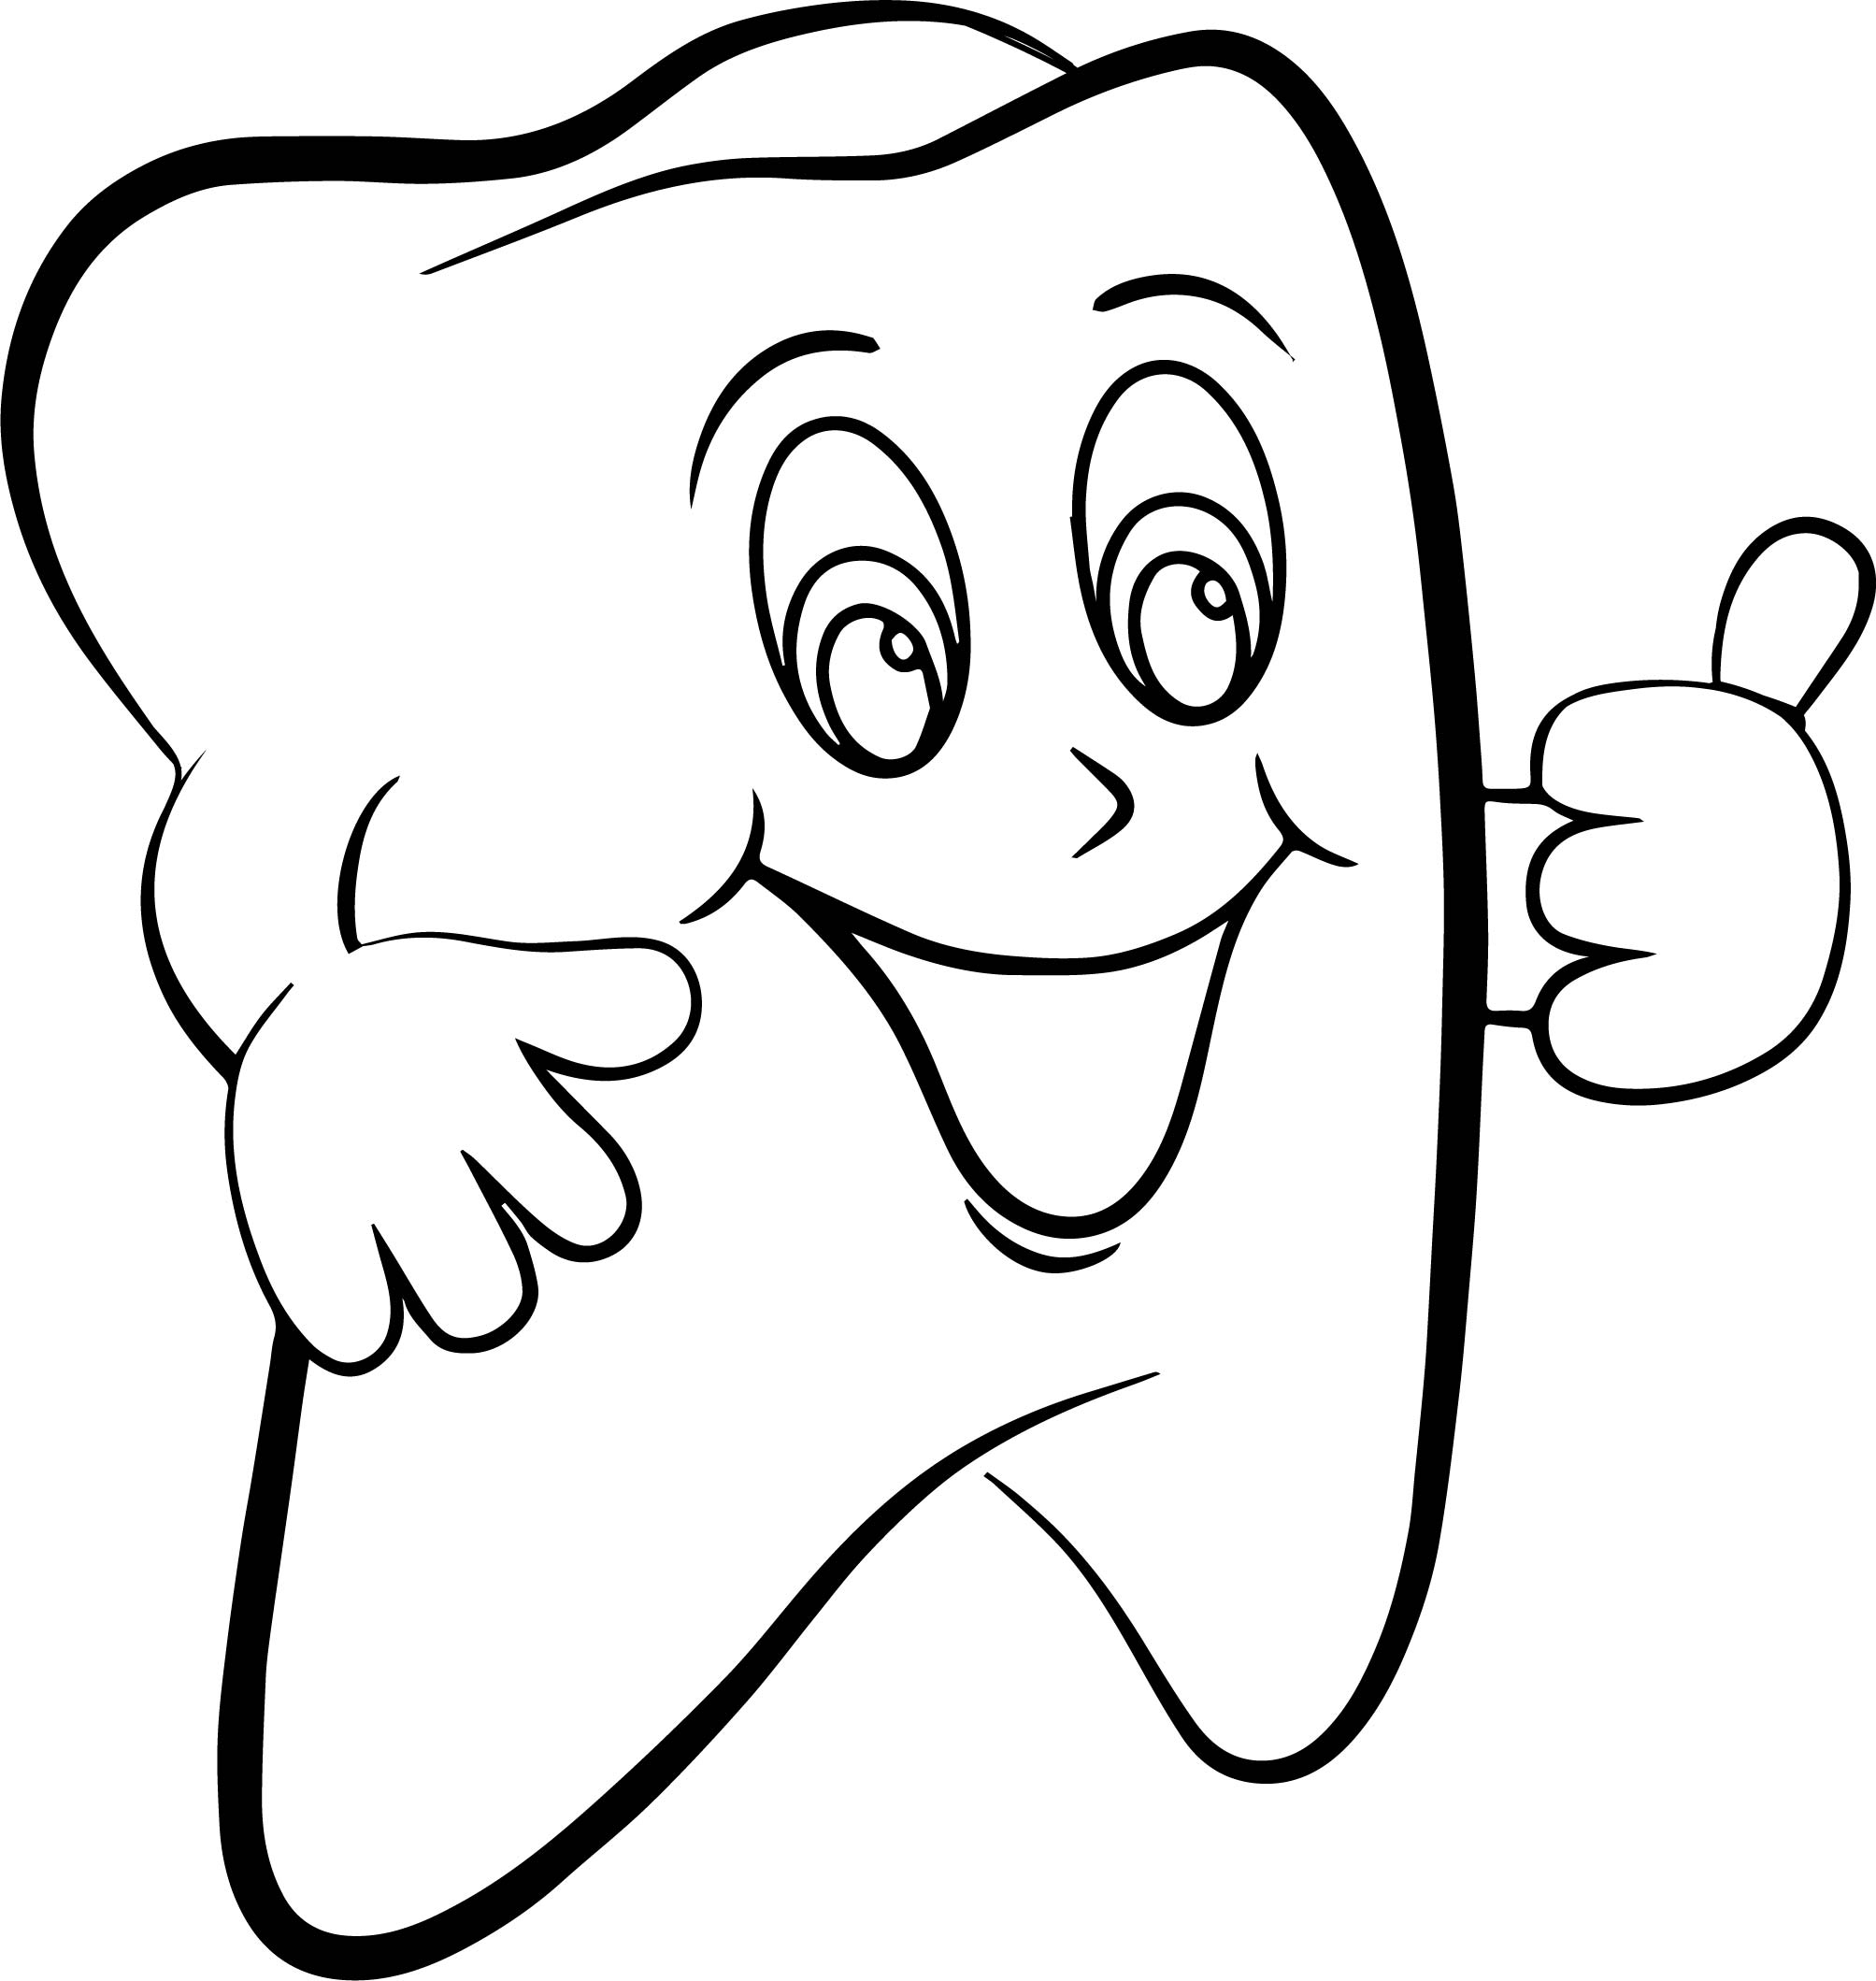 Super Dental Tooth Coloring Page Wecoloringpage